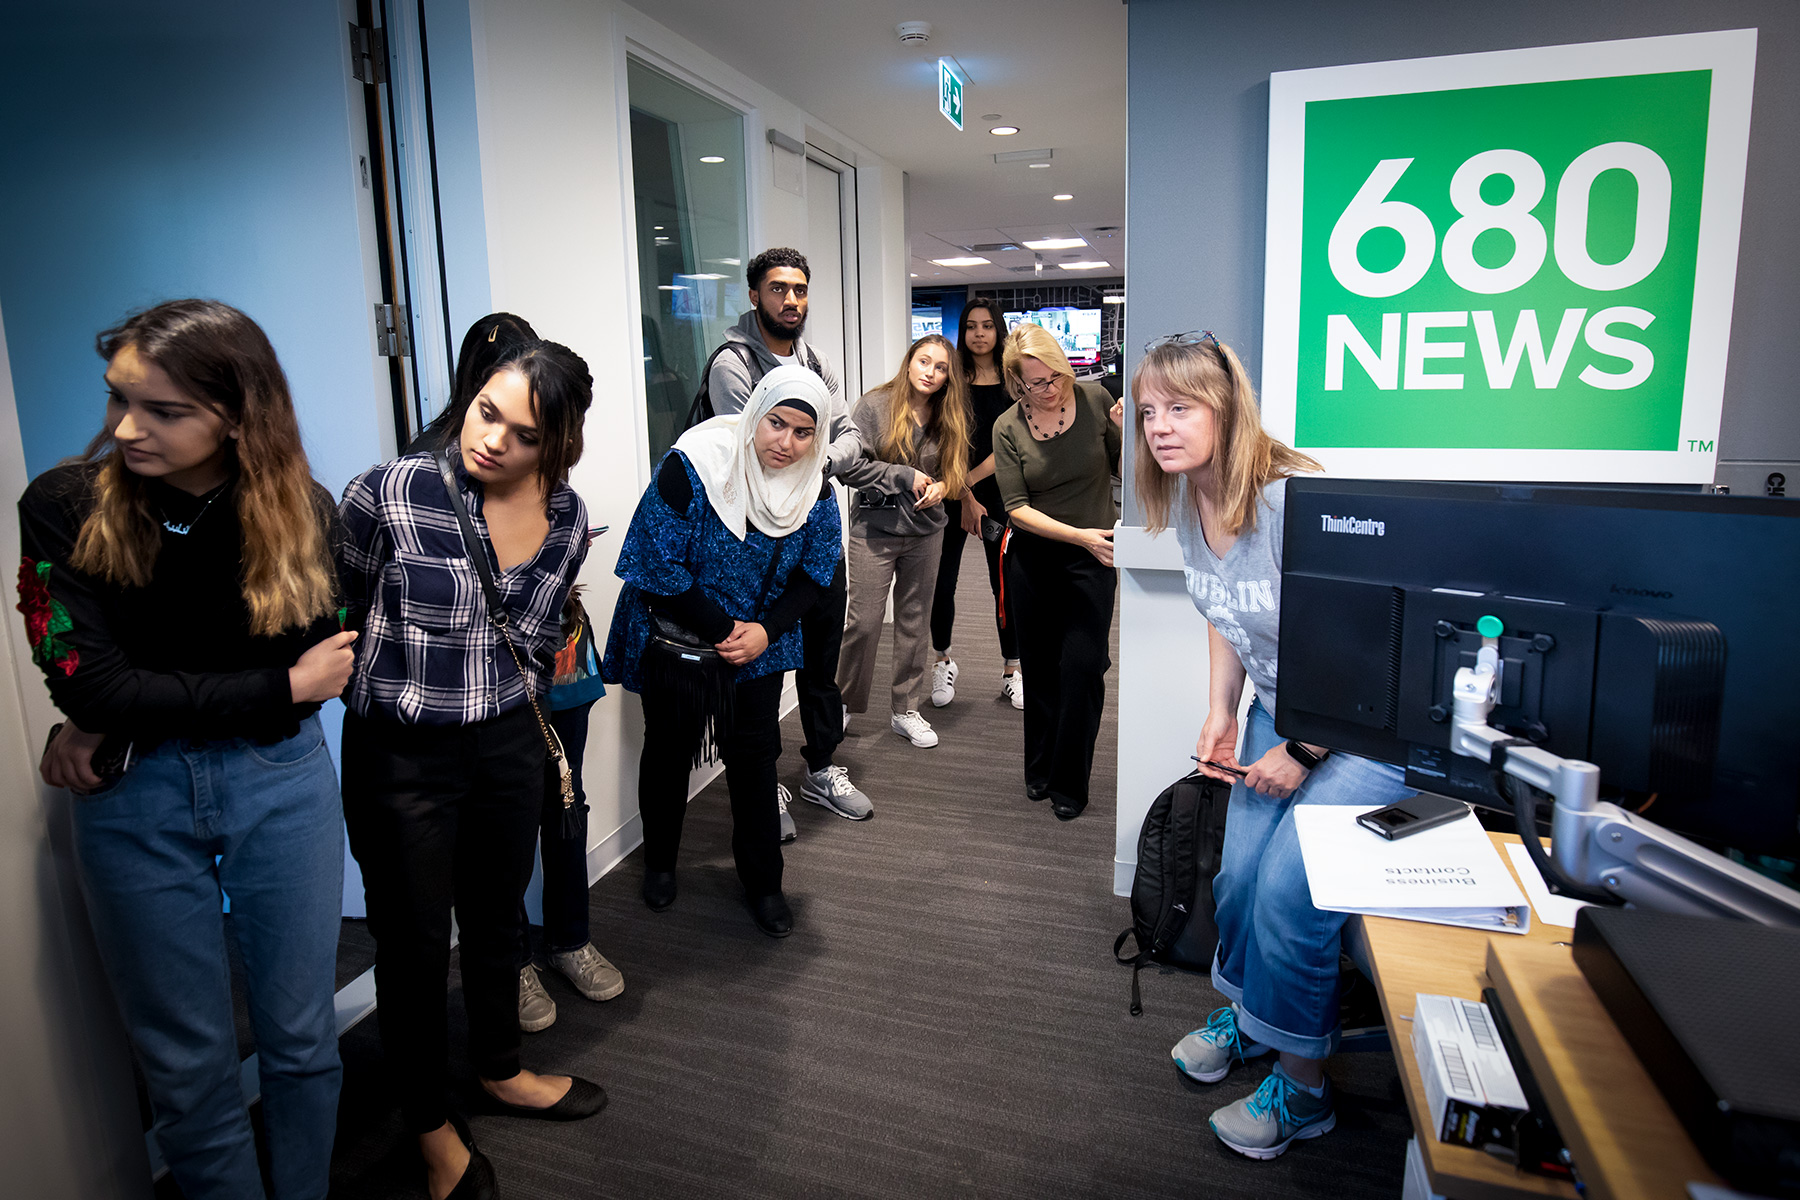 Students touring Rogers/680 News